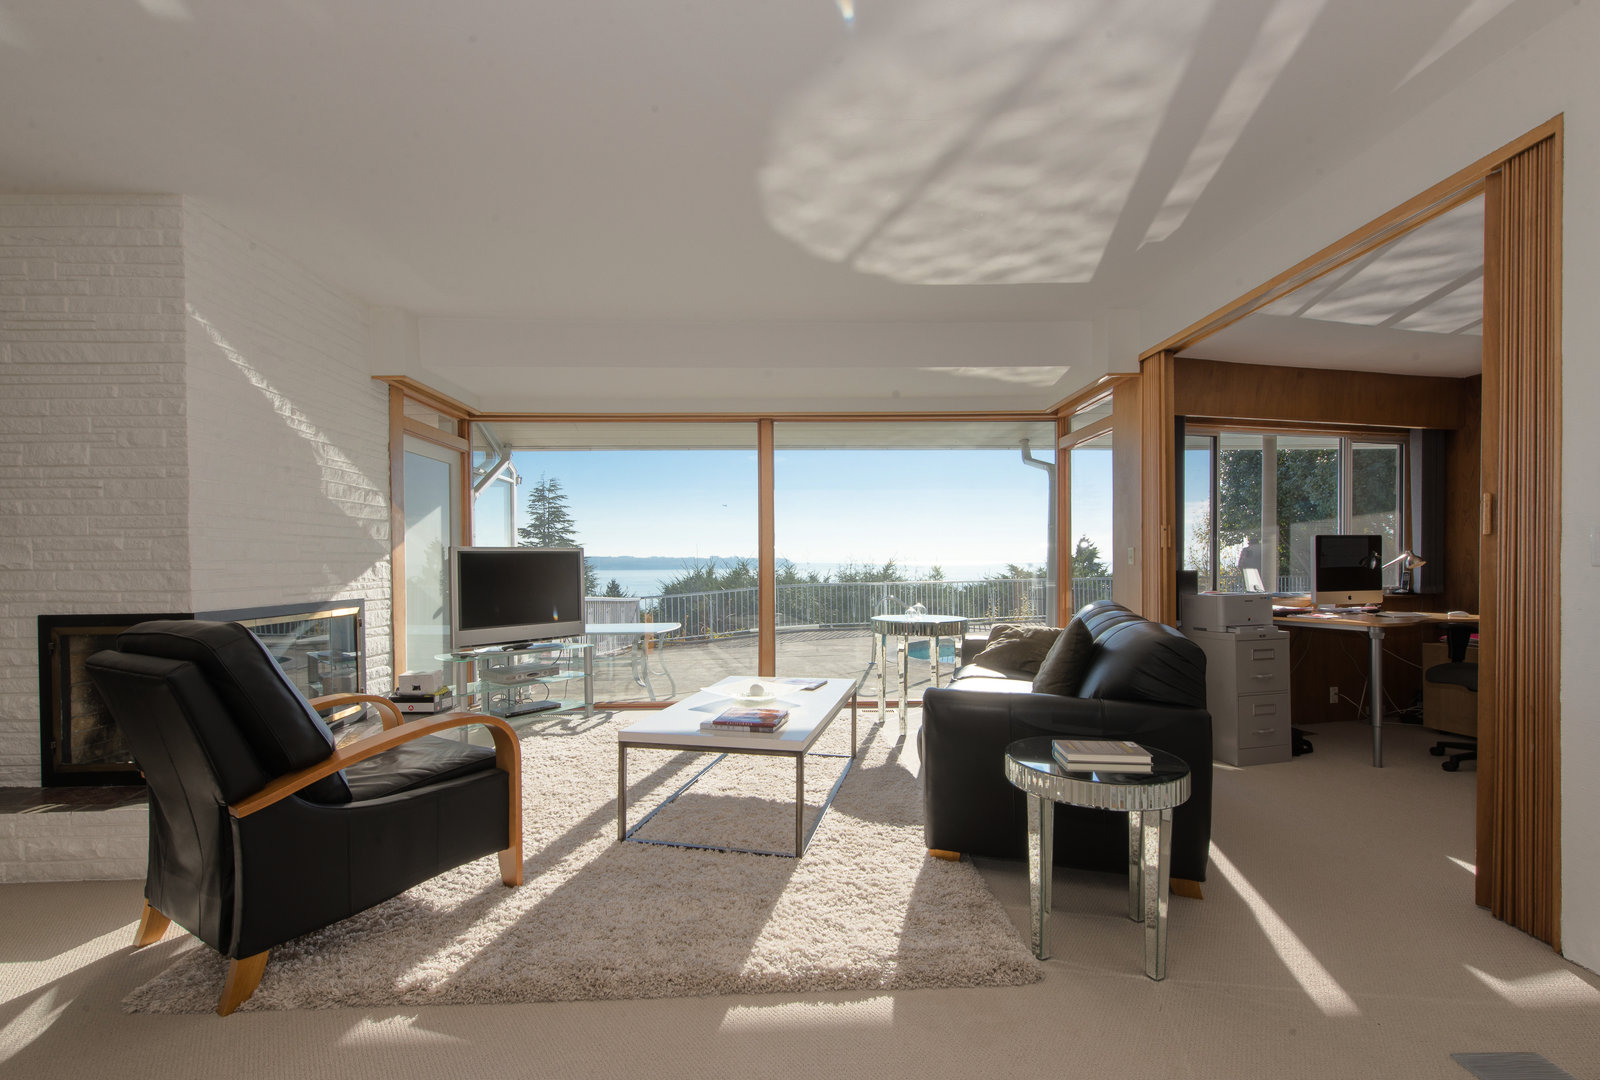 Burkehill Place West Vancouver BC Real Estate By Tom Hassan - Burkehill residence canada